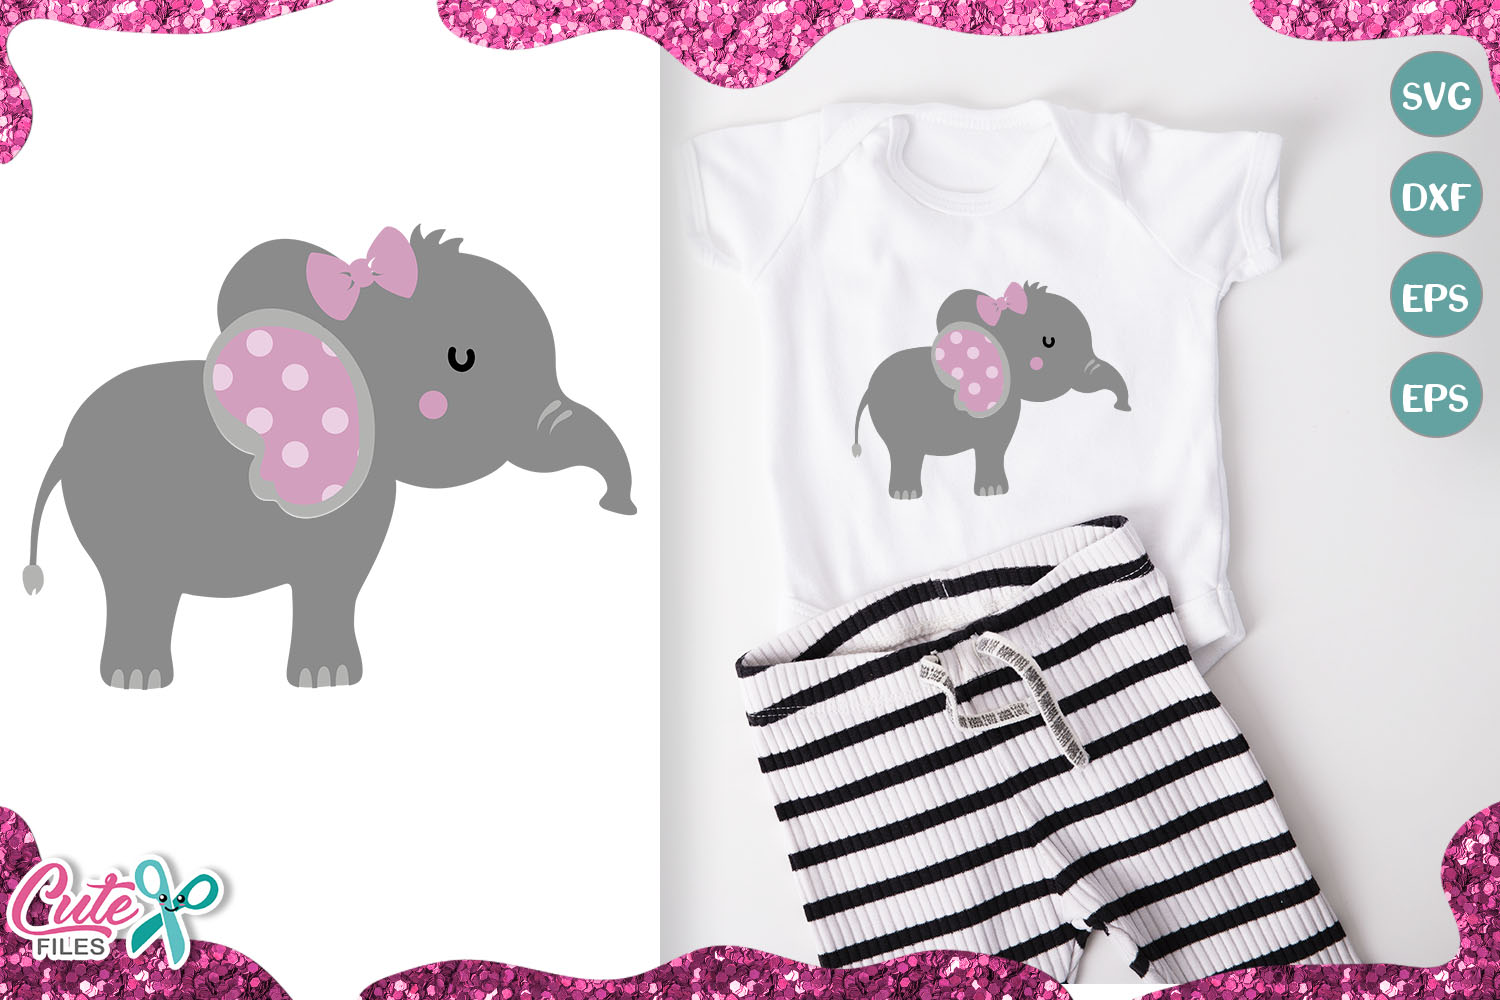 Download Free Little Elephant Its A Girl Graphic By Cute Files Creative Fabrica for Cricut Explore, Silhouette and other cutting machines.